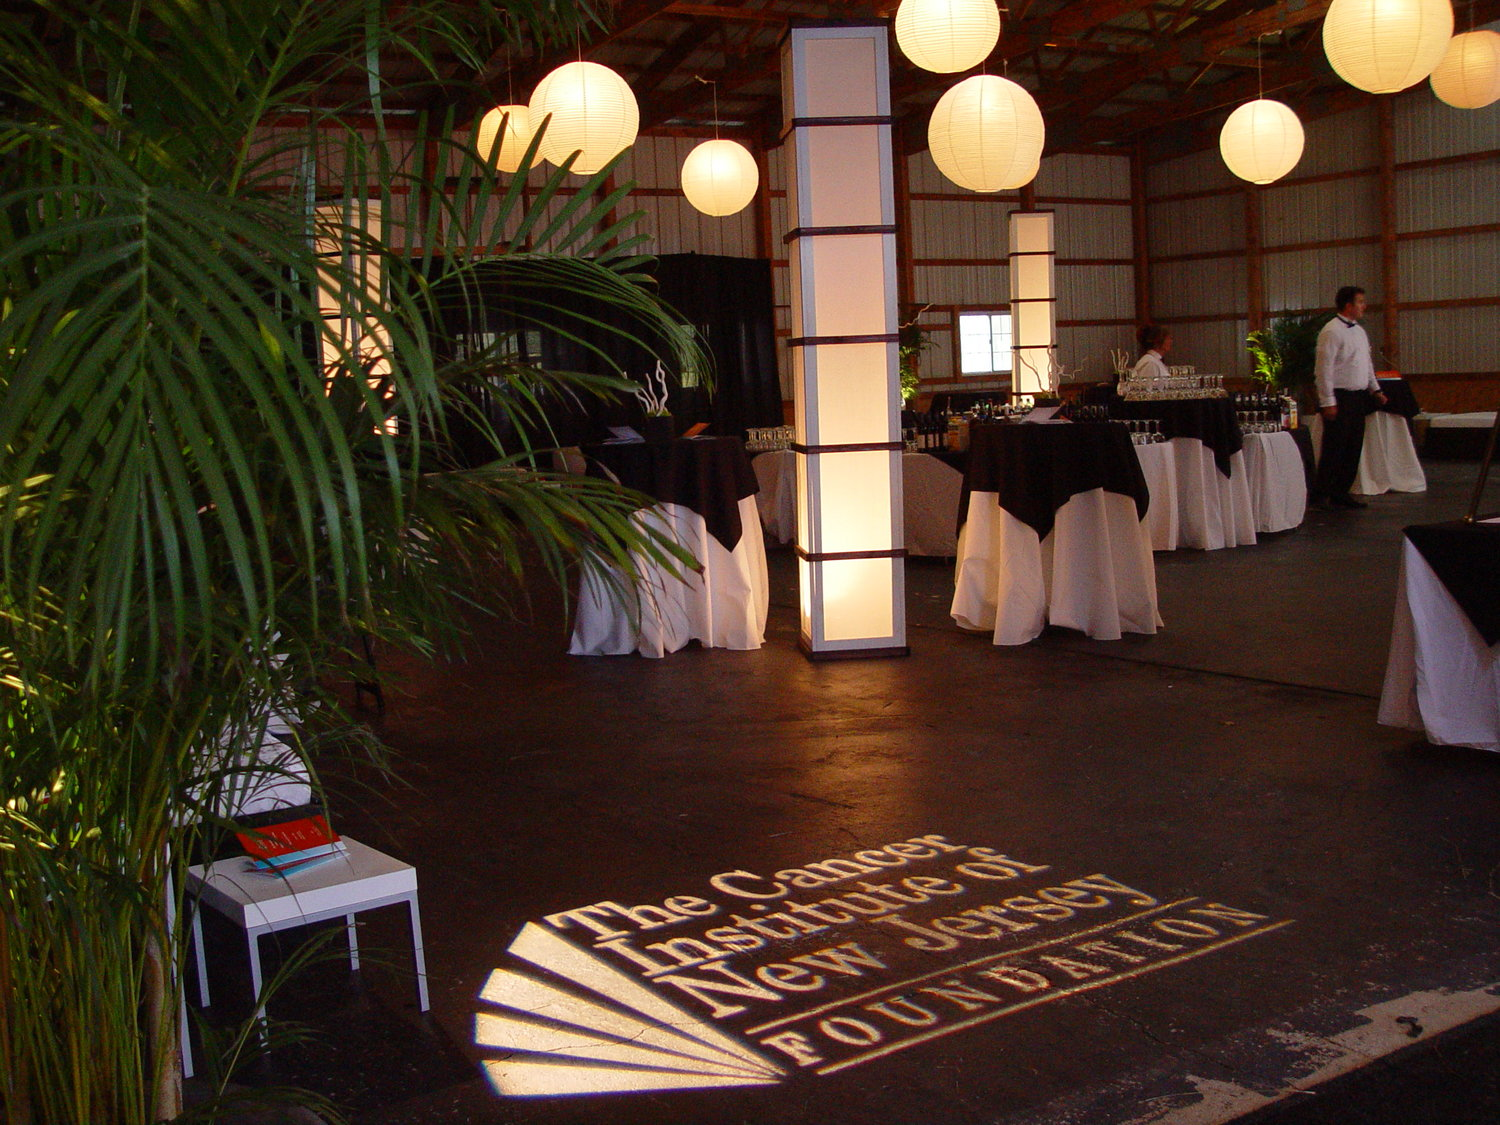 NJ_event_decor_lighting_design_rentals_gala_fundraiser.jpg